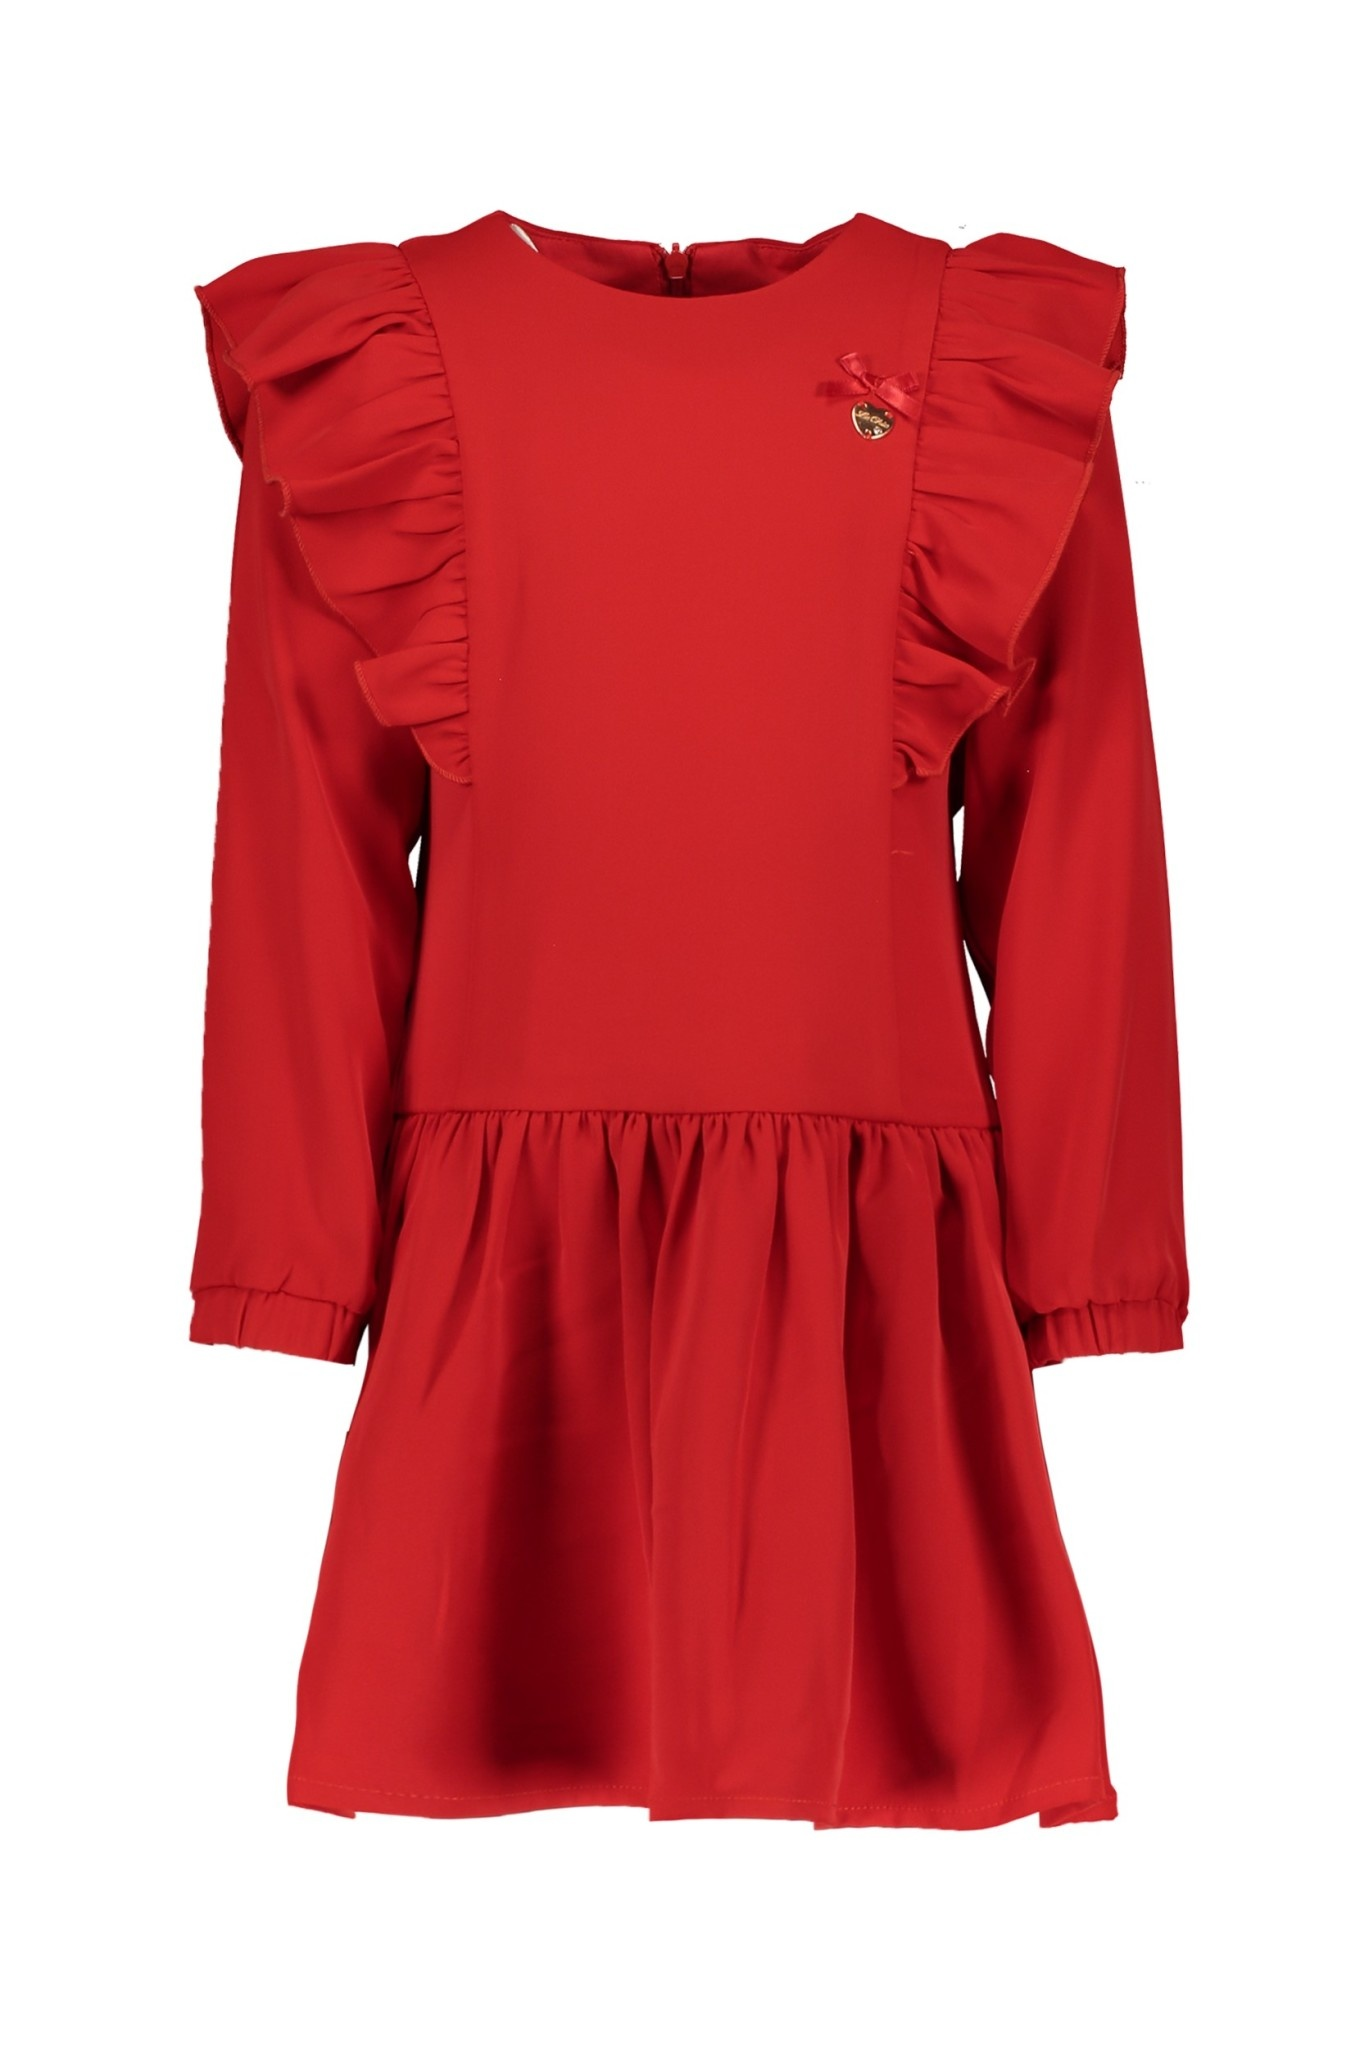 Lechic Le Chic Red Dress with Ruffle Sleeve